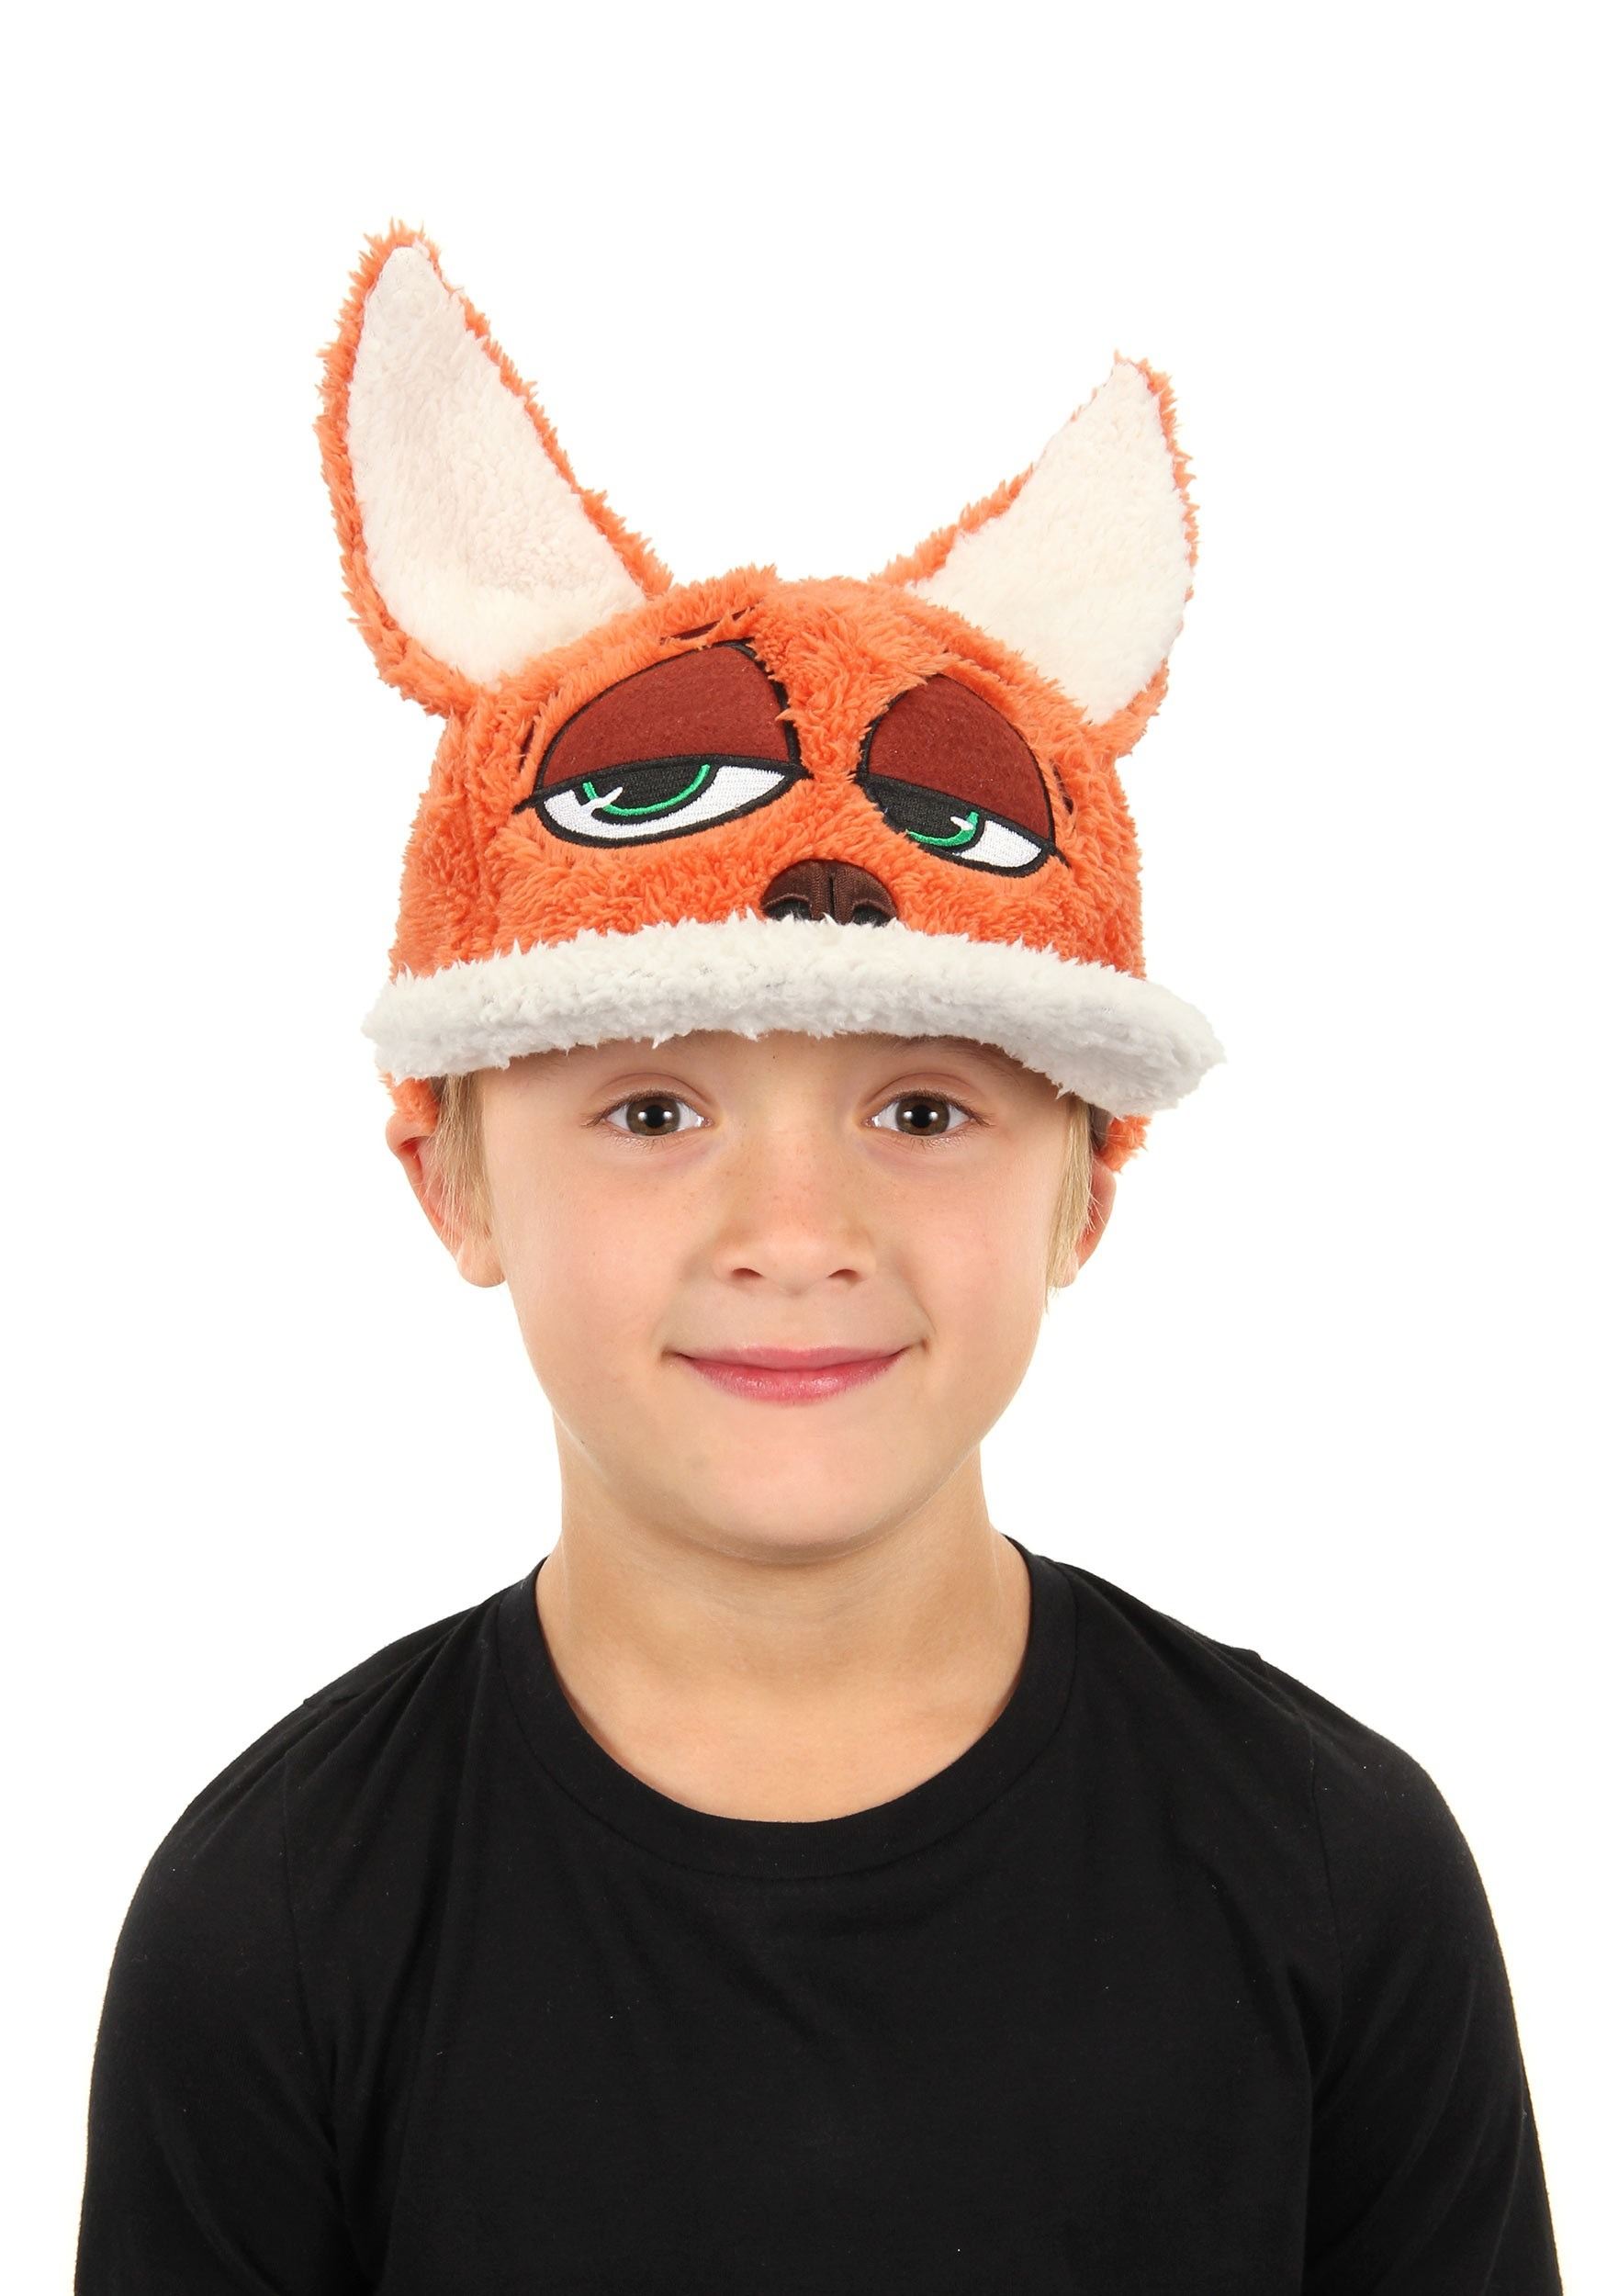 Disney Zootopia Nick Wilde Child Fuzzy Baseball Cap EL251090